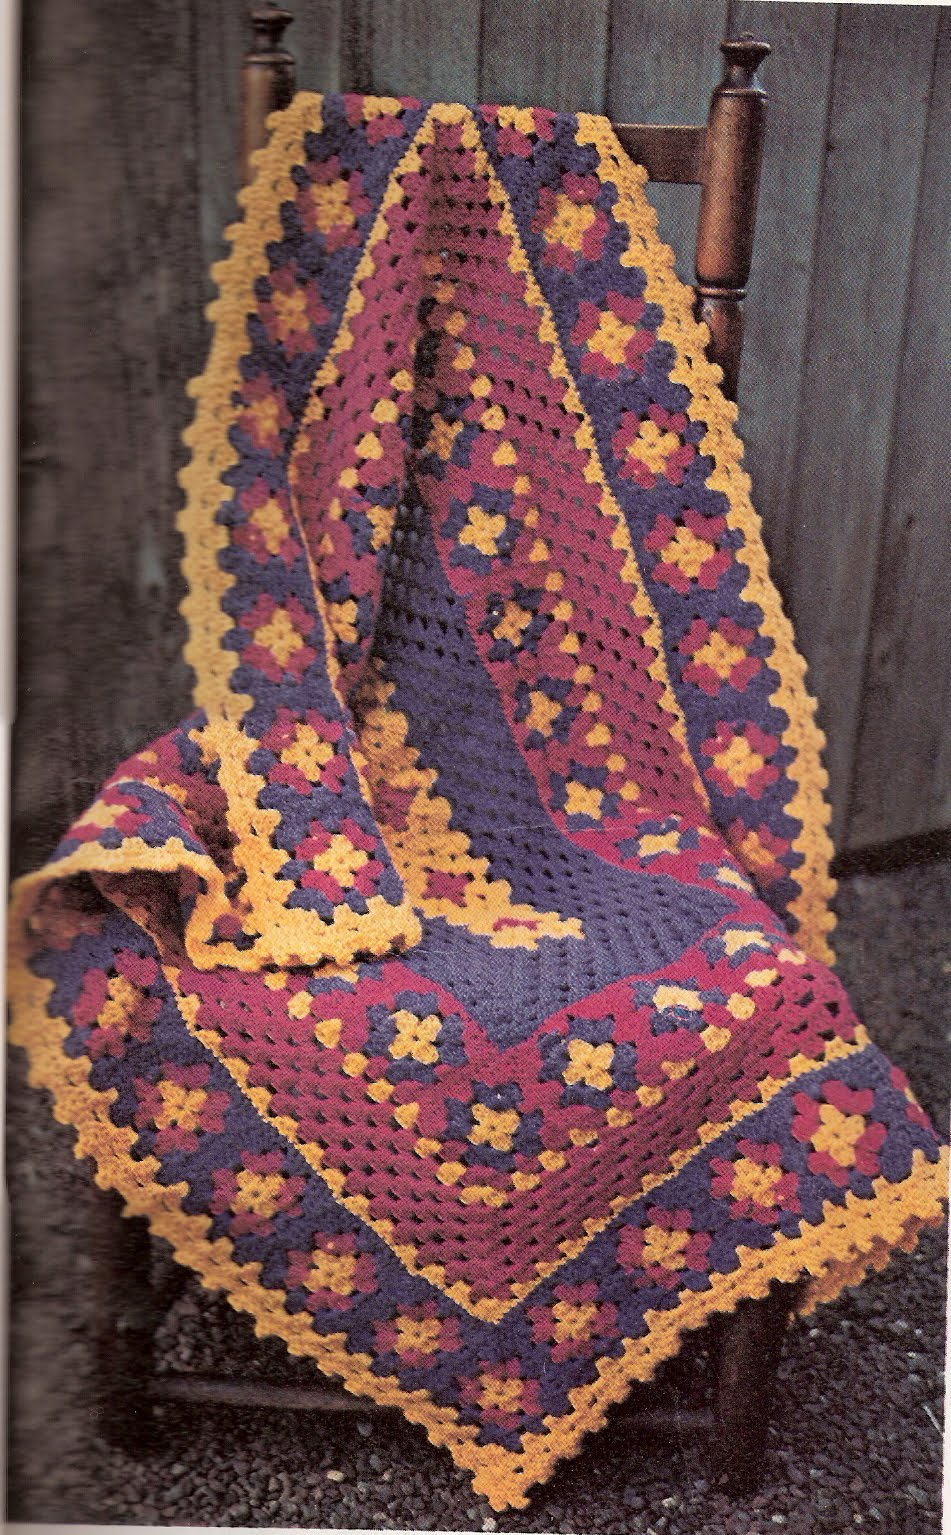 crochet blanket patterns-Knitting Gallery